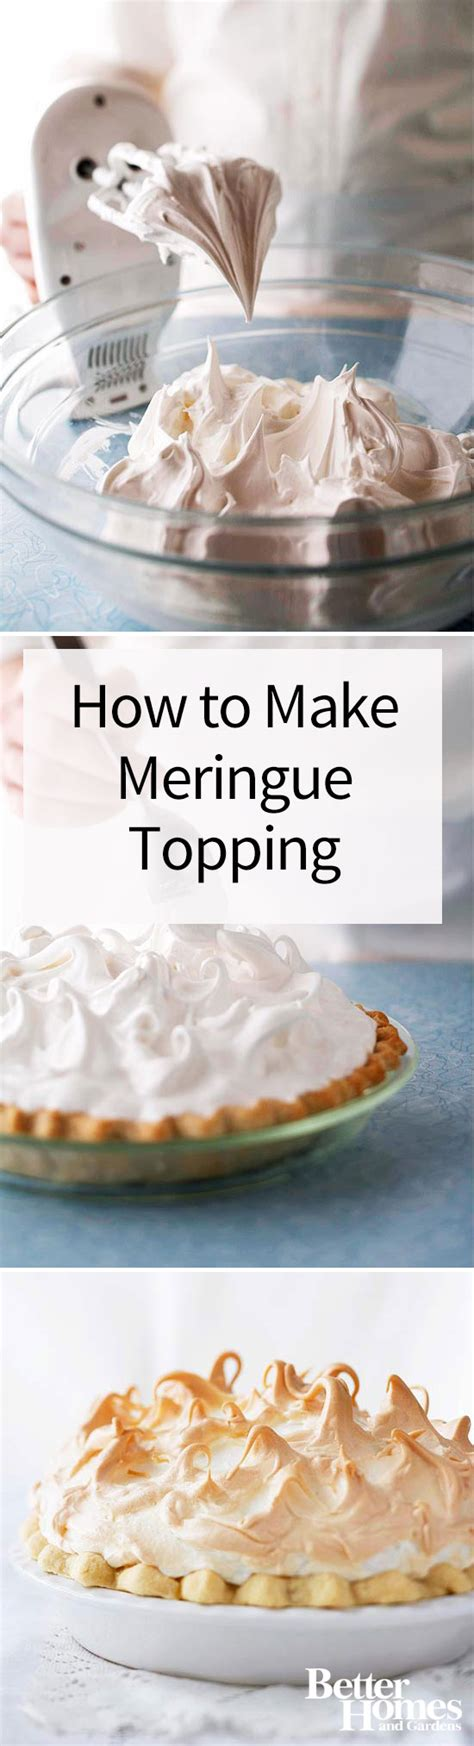 how to make meringue how to make meringue topping for pies